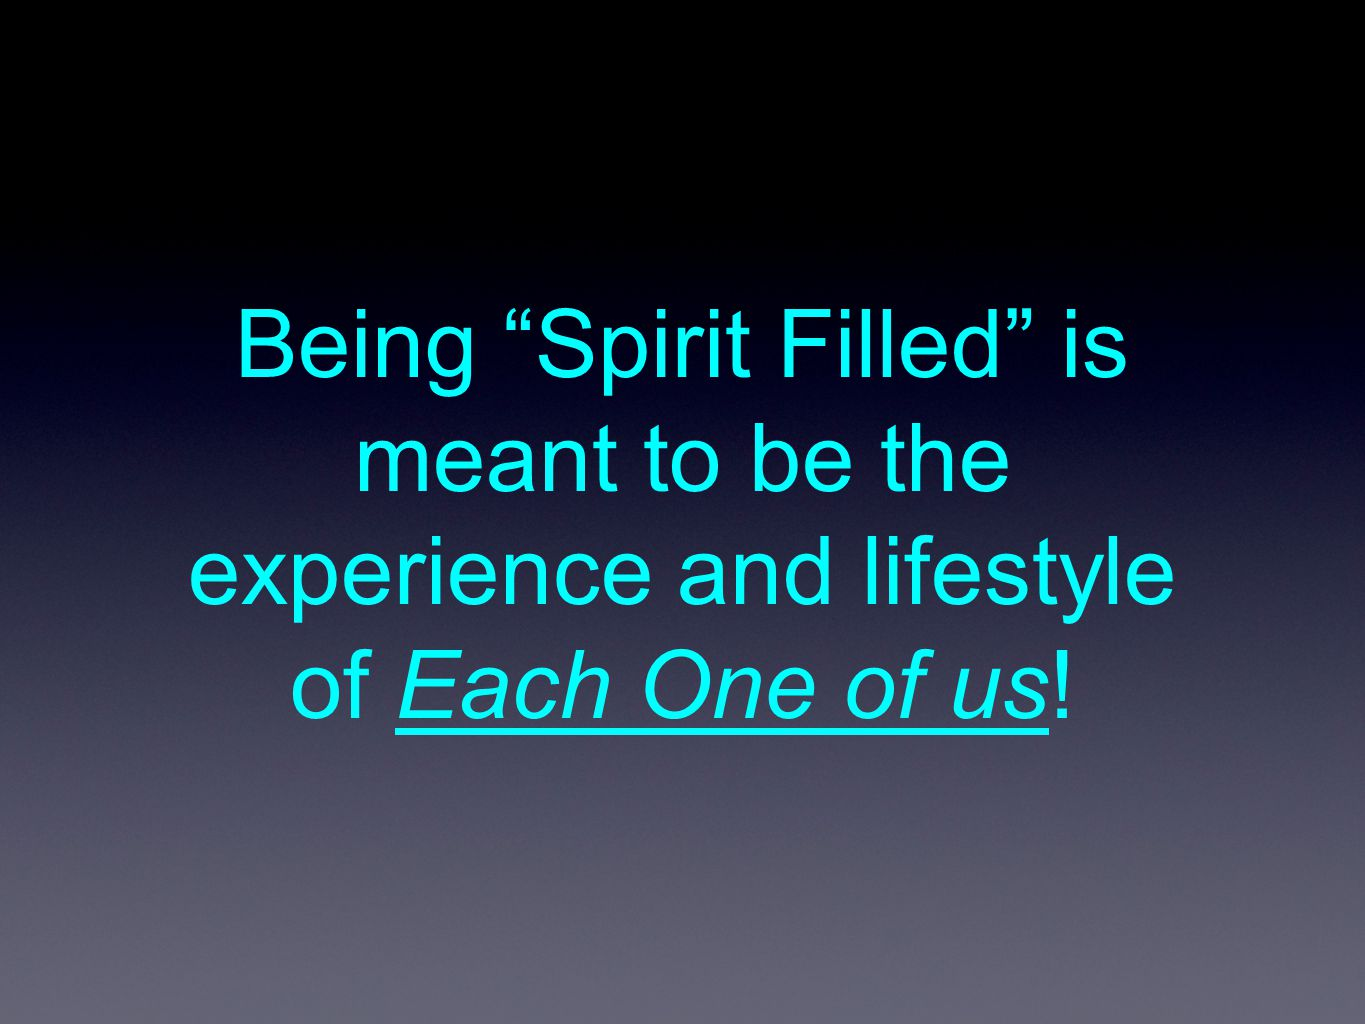 Being Spirit Filled is meant to be the experience and lifestyle of Each One of us!